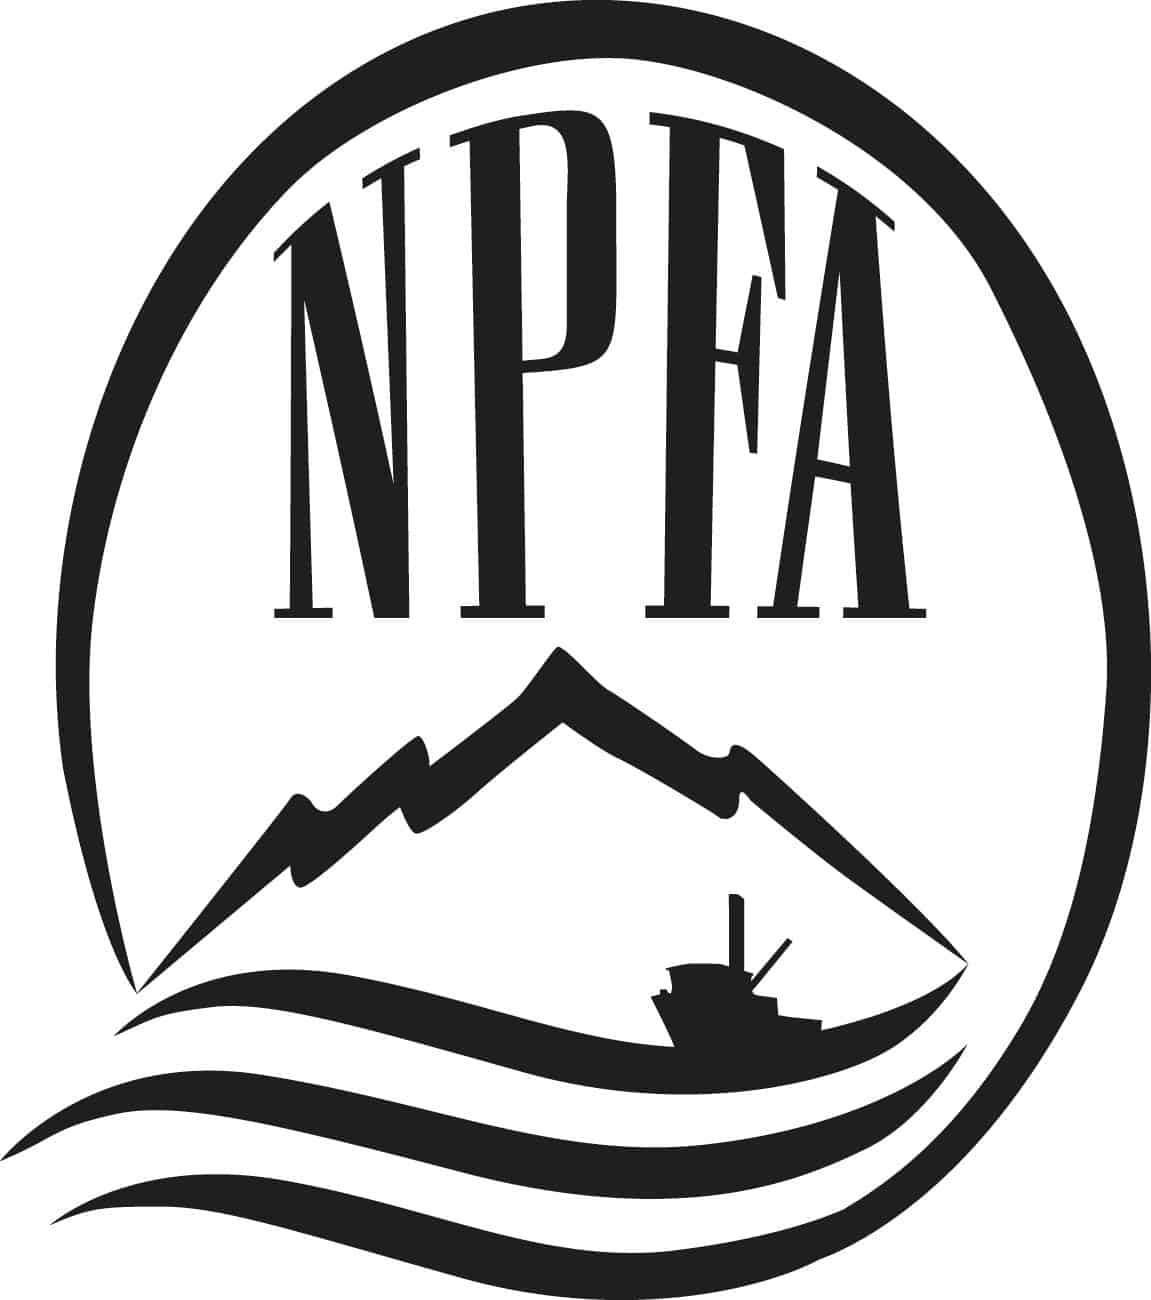 The North Pacific Fisheries Association